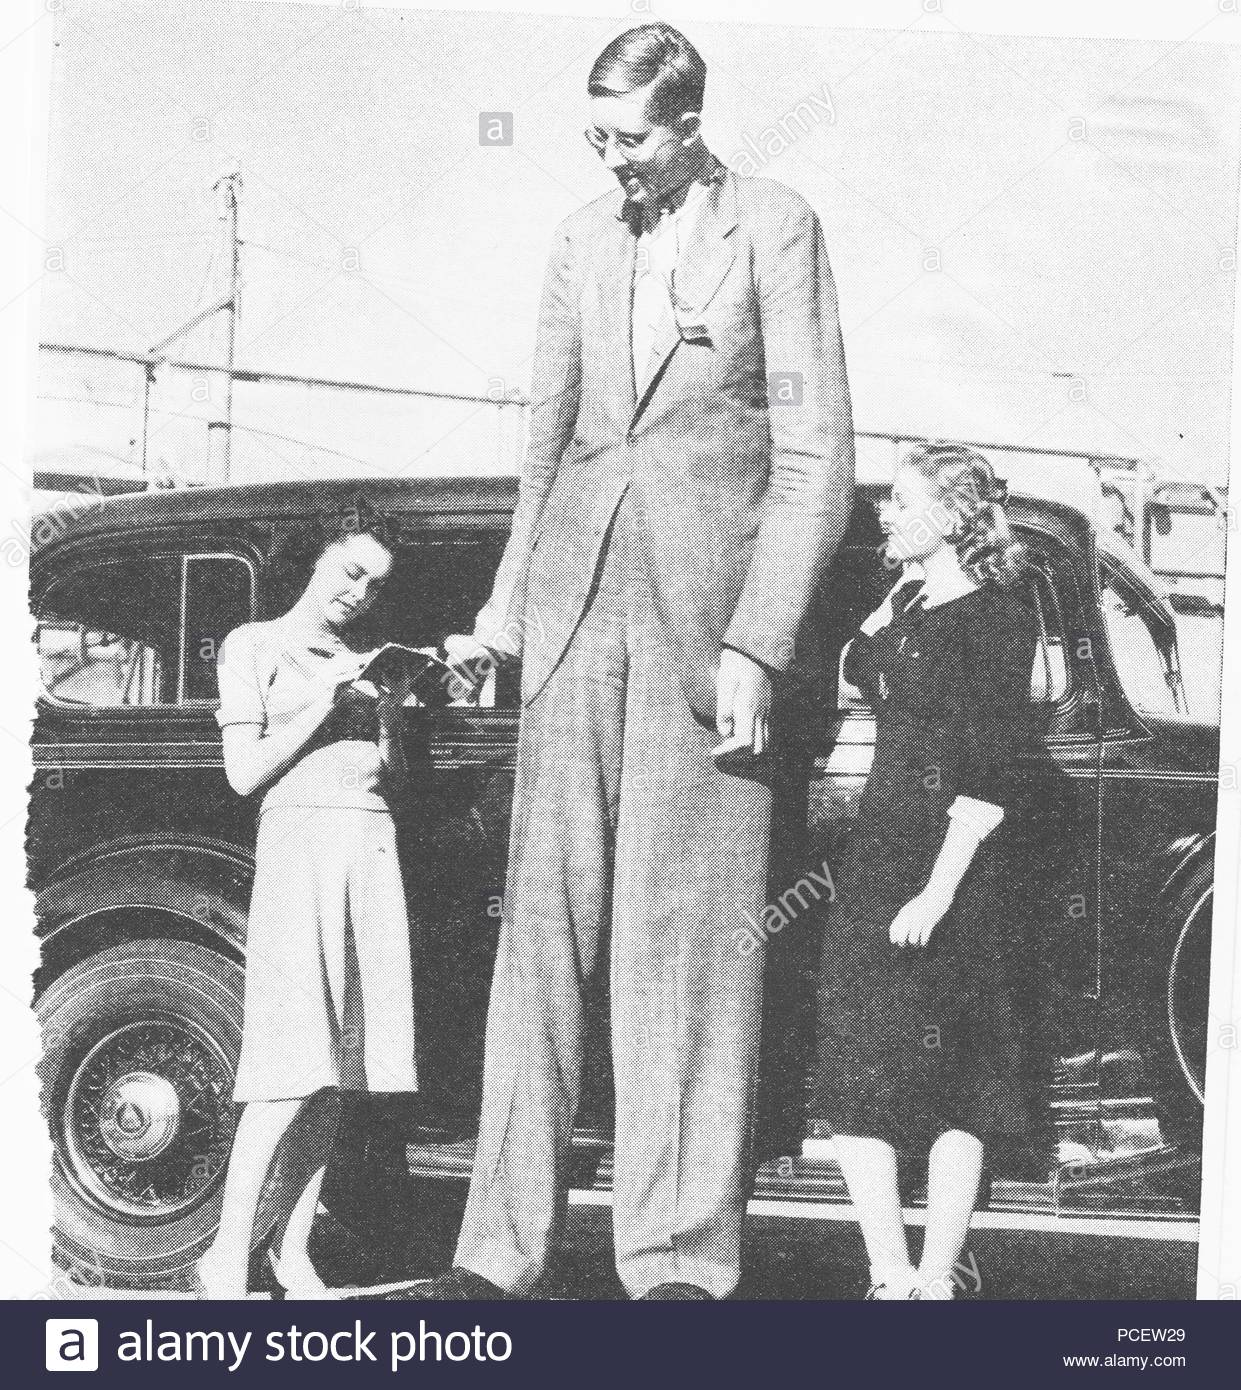 robert wadlow stock photos robert wadlow stock images alamy